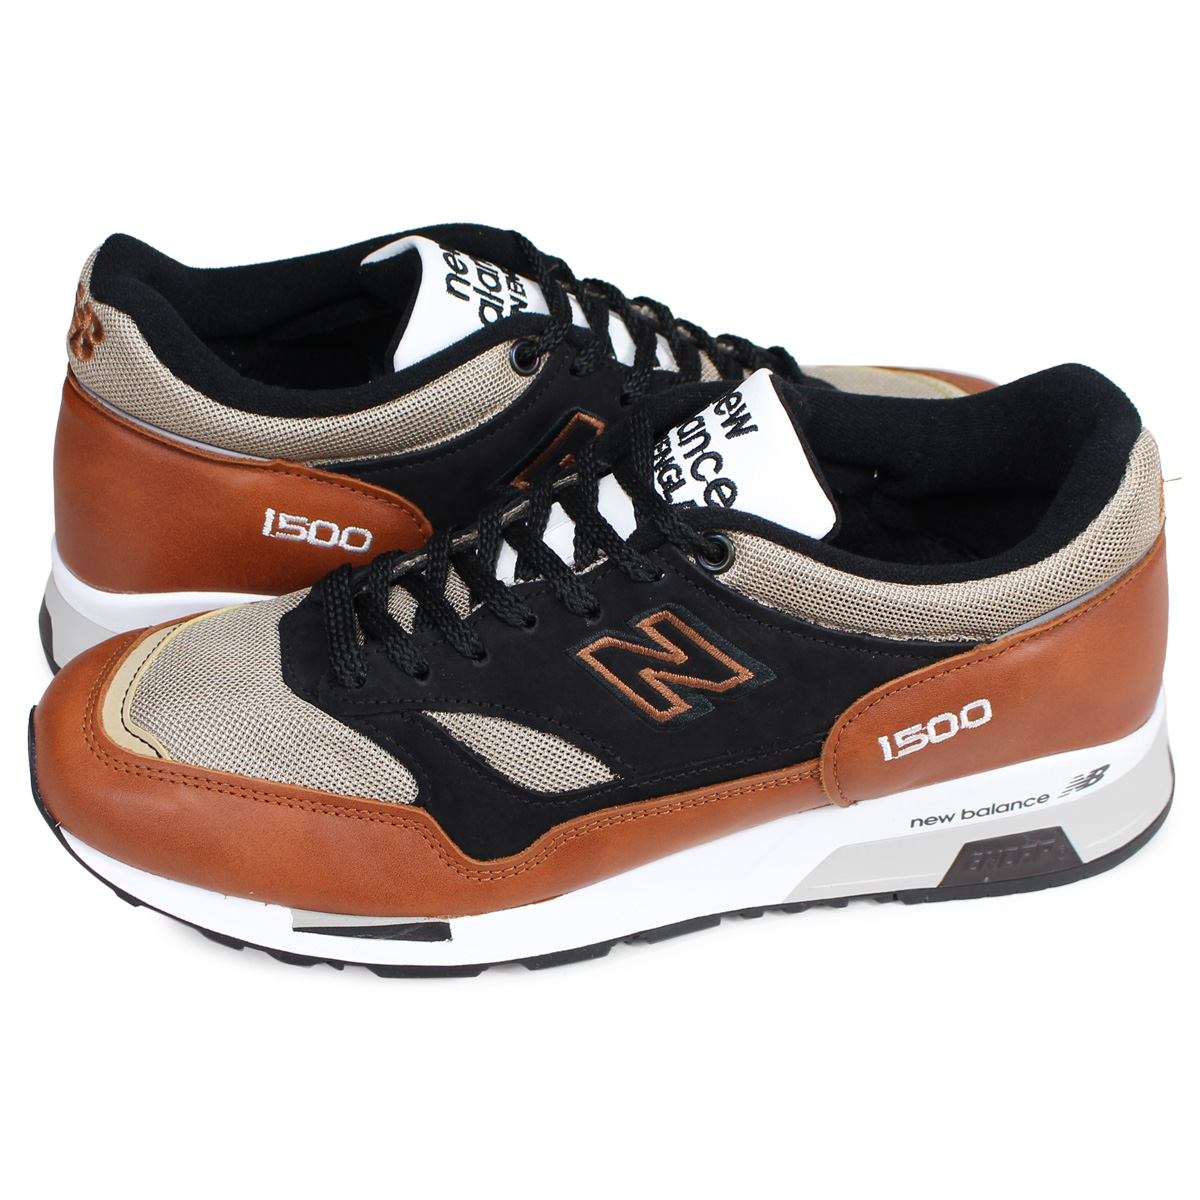 meilleur service 5e3a2 46169 new balance M1500TBT New Balance 1500 sneakers men D Wise MADE IN UK brown